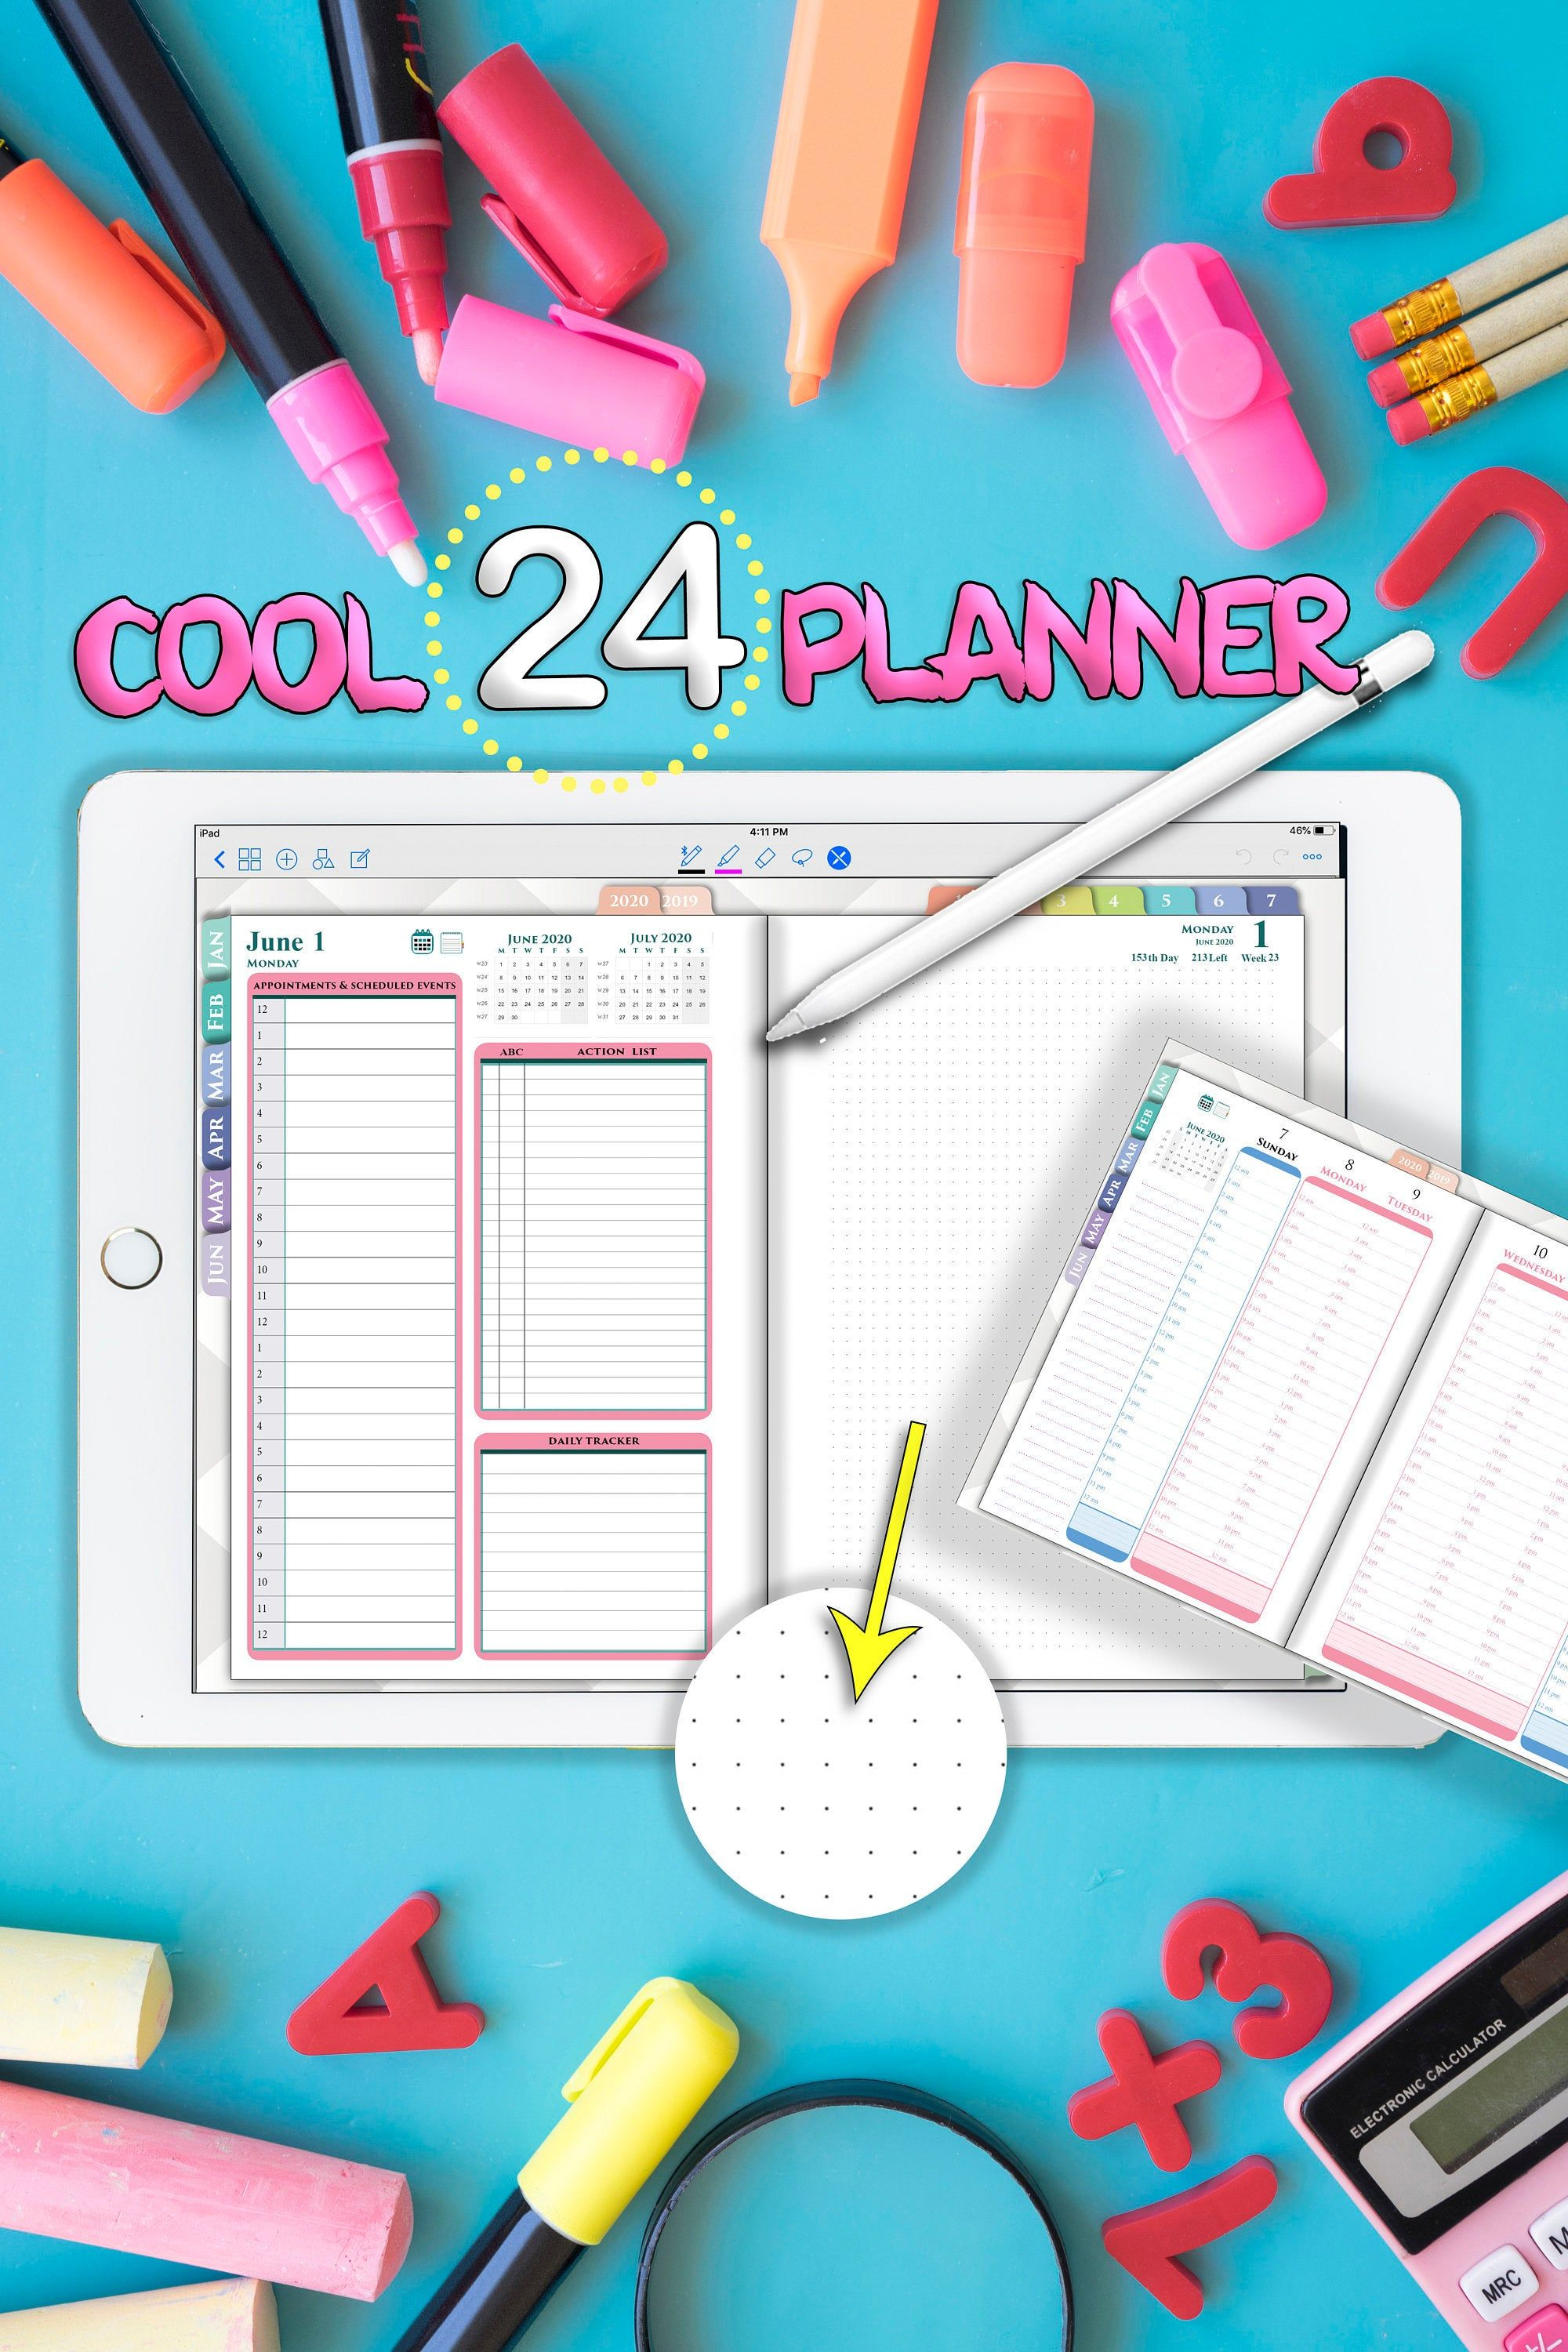 24 Hour Planner For Digital Ipad Hourly Planners Daily